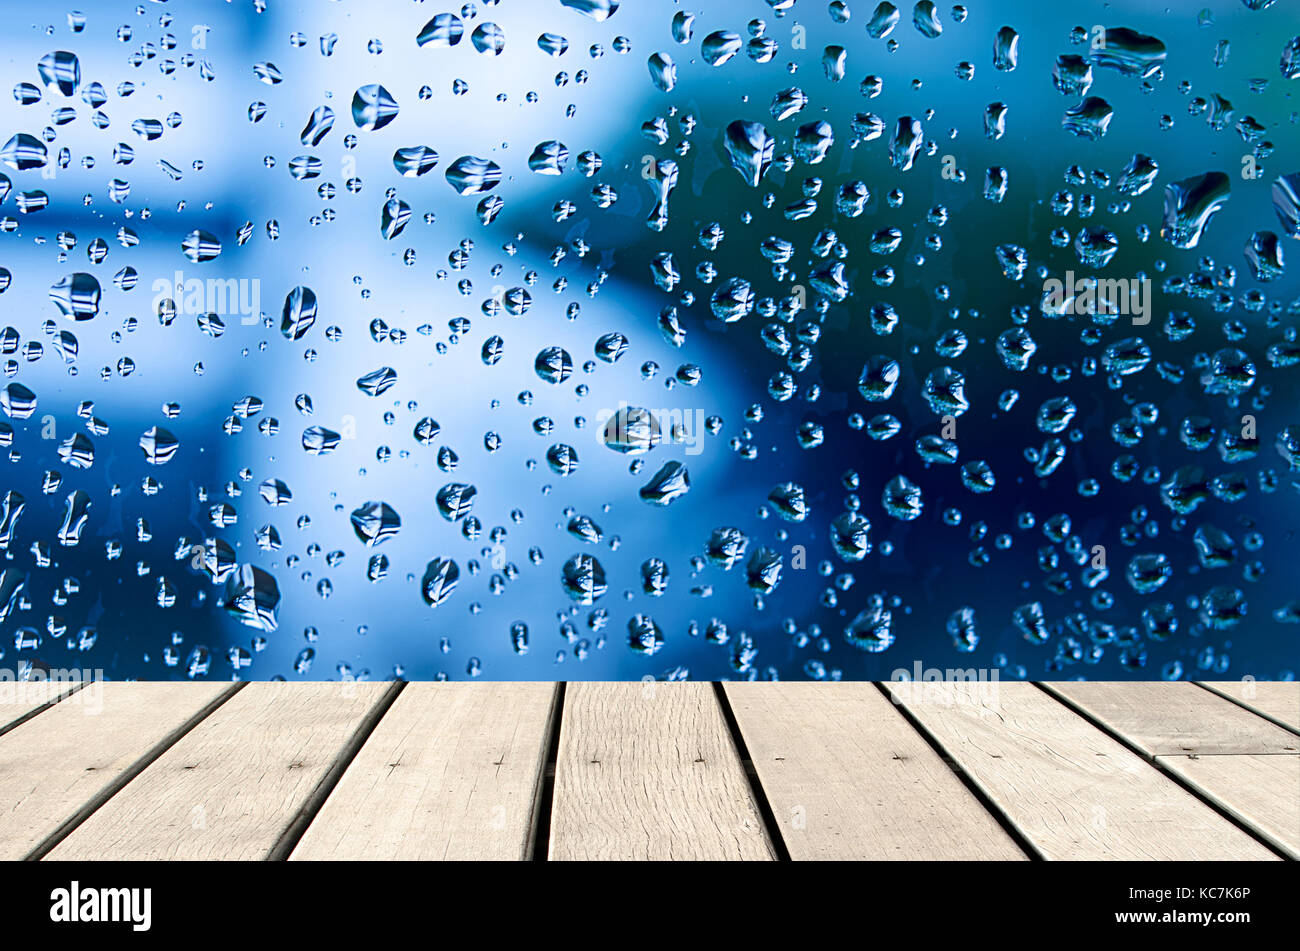 Charmant Wood Table Top Background Of Water Drops On Glass   Use Background For  Product Display Montage